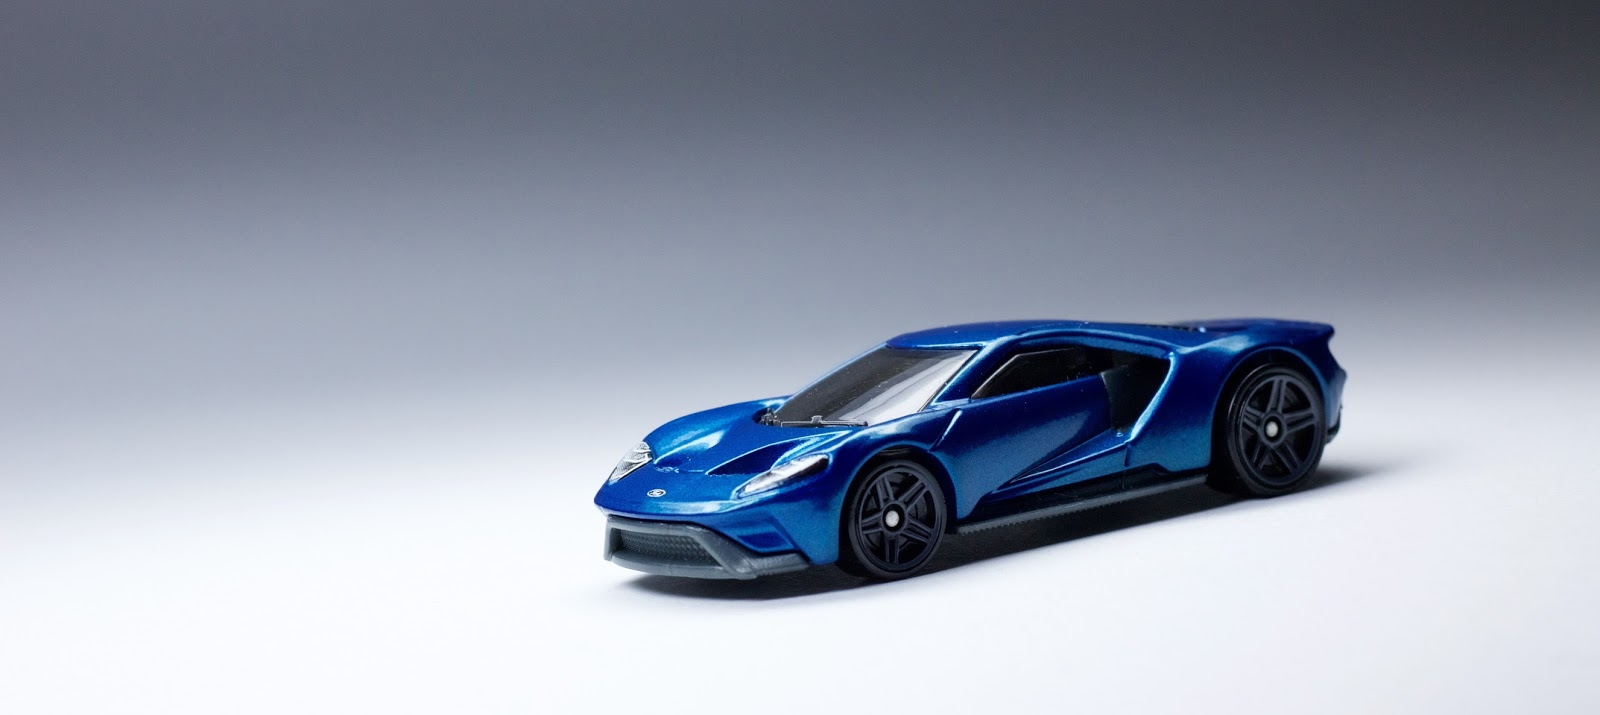 The Liquid Blue Trifecta Is Complete With The Debut Of The Hot Wheels  Ford Gt Thelamleygroup